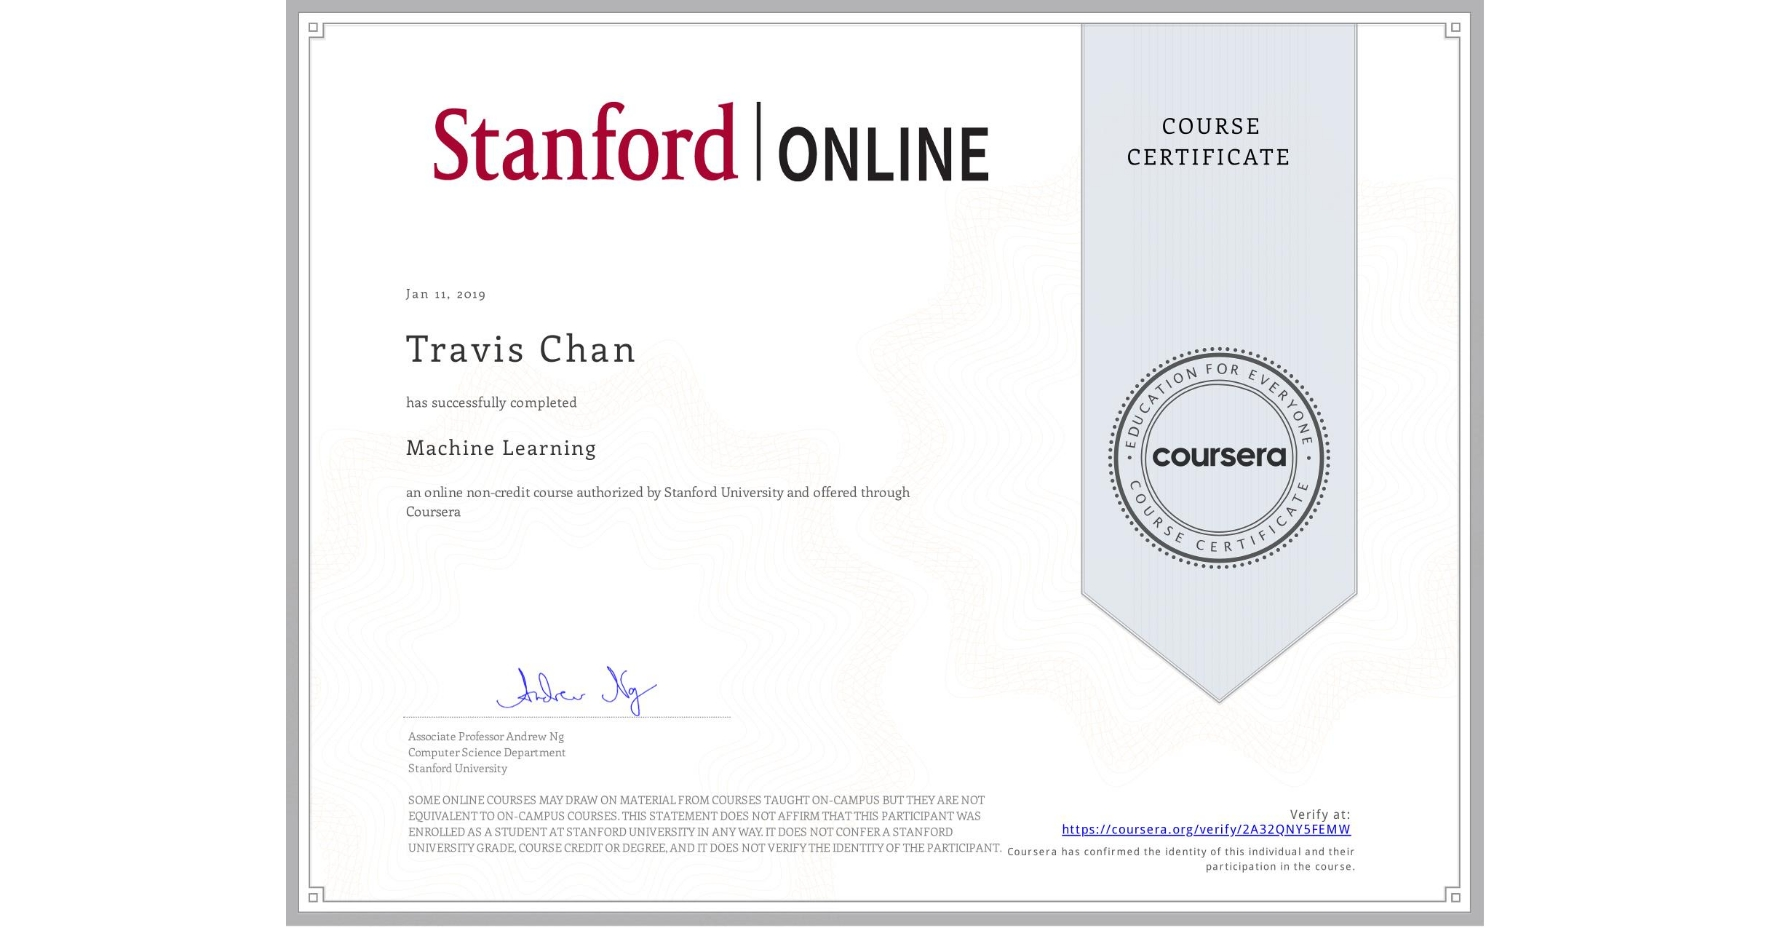 View certificate for Travis Chan, Machine Learning, an online non-credit course authorized by Stanford University and offered through Coursera